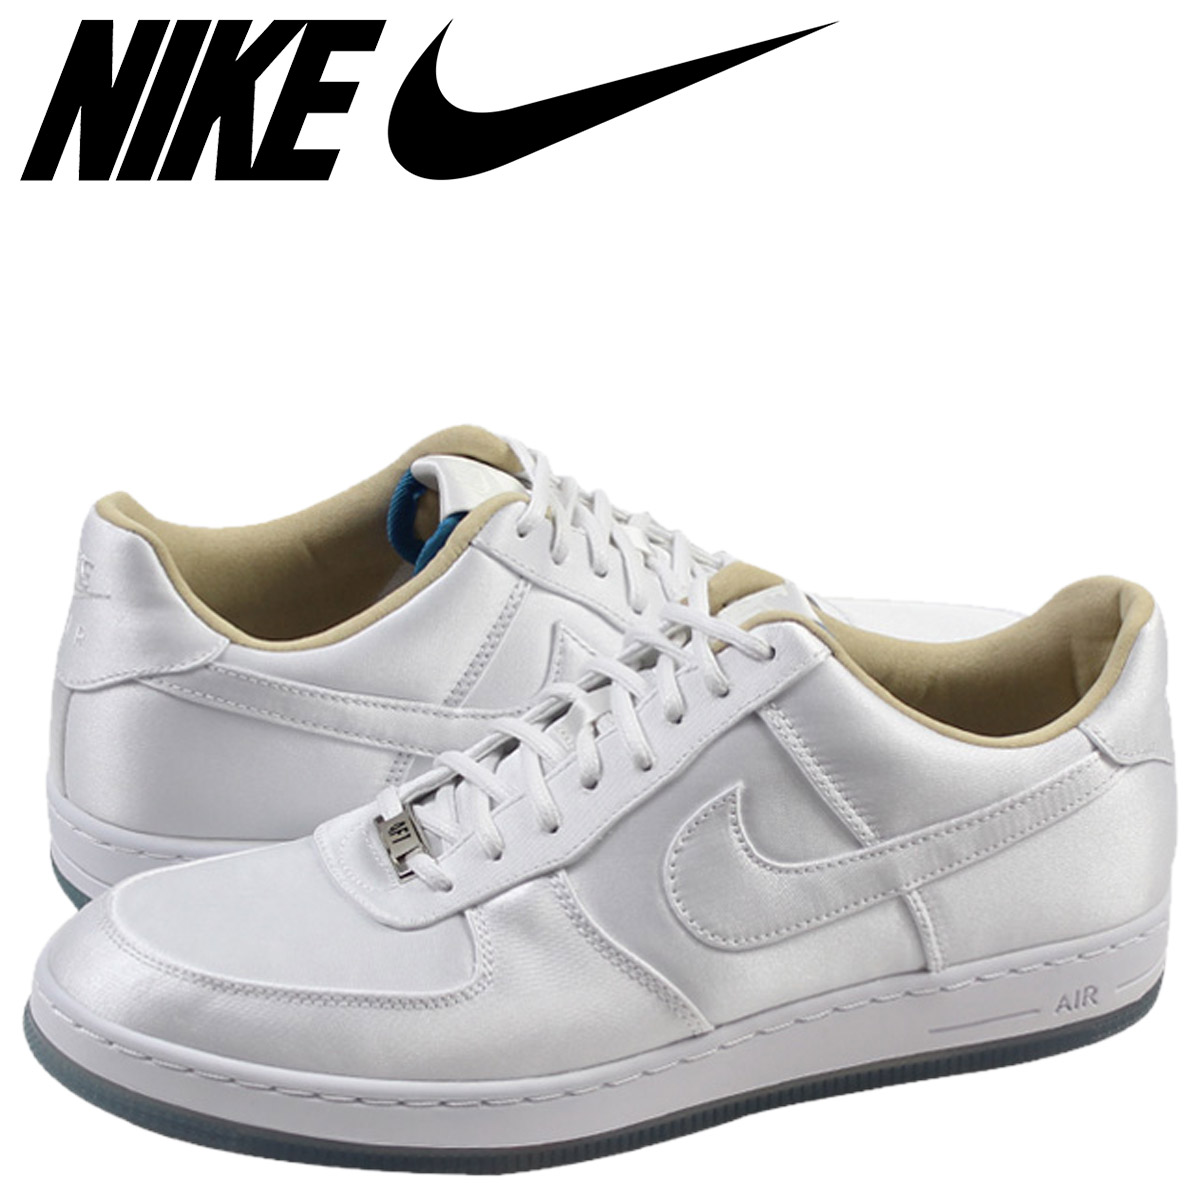 NIKE Nike air force sneakers AIR FORCE 1 DOWNTOWN QS air force 1 downtown 635,273 100 men's shoes white